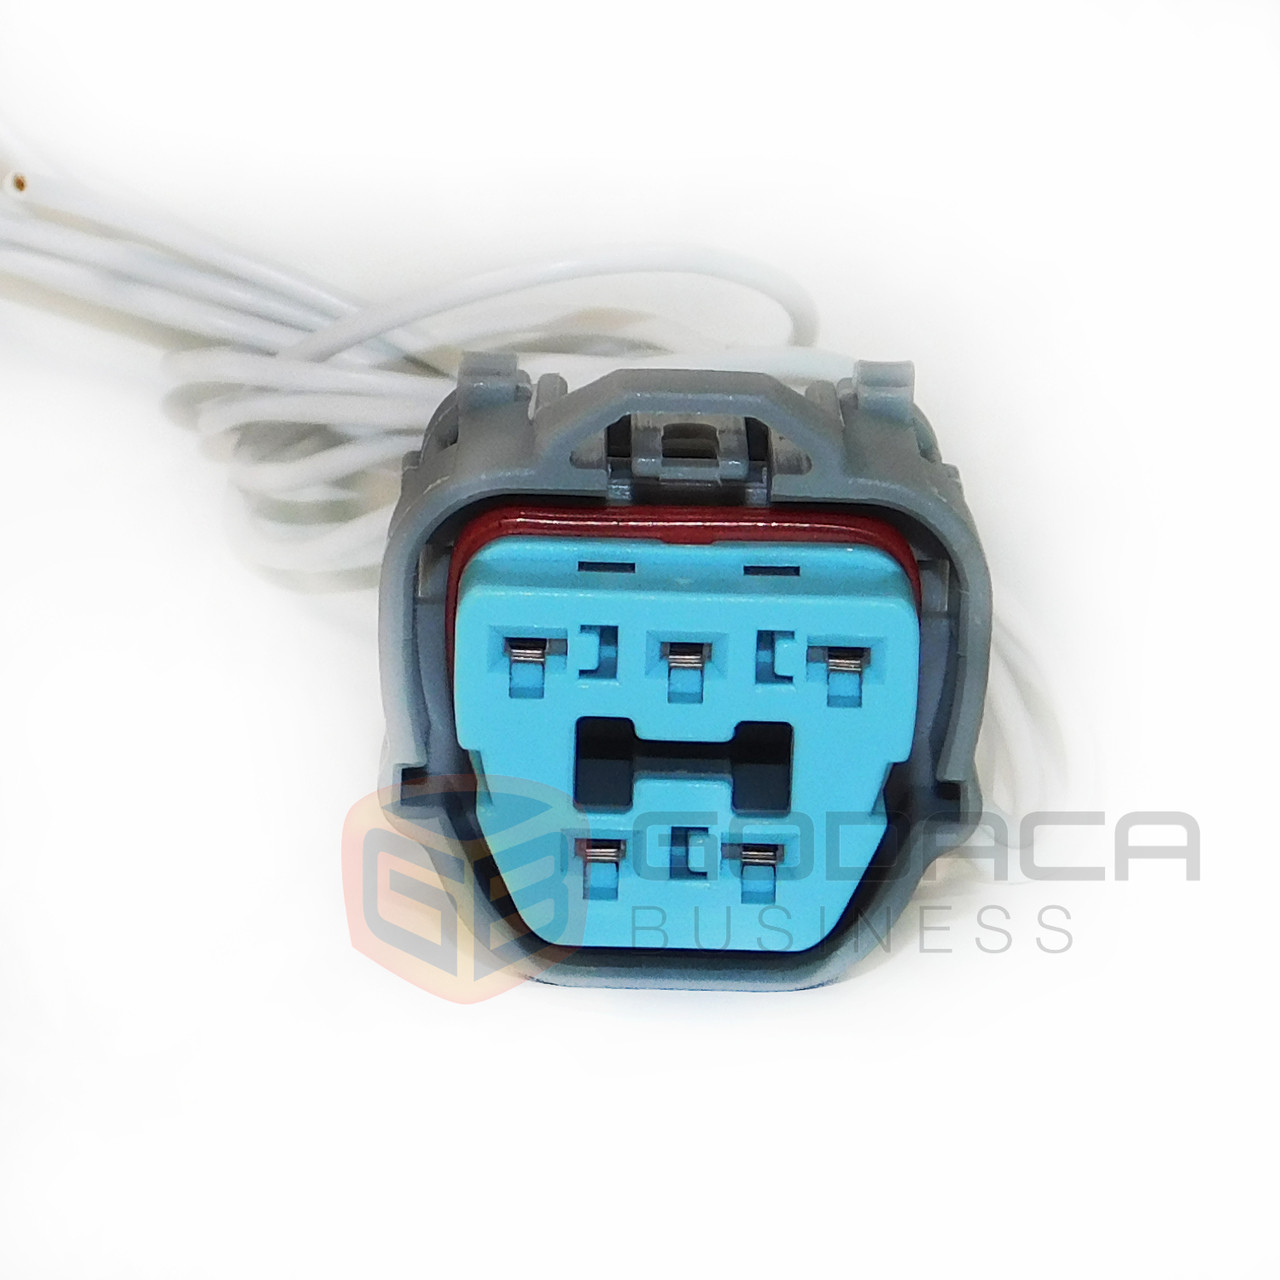 small resolution of connector fuel pump harness pigtail for honda civic accord 5 way with wire godaca llc